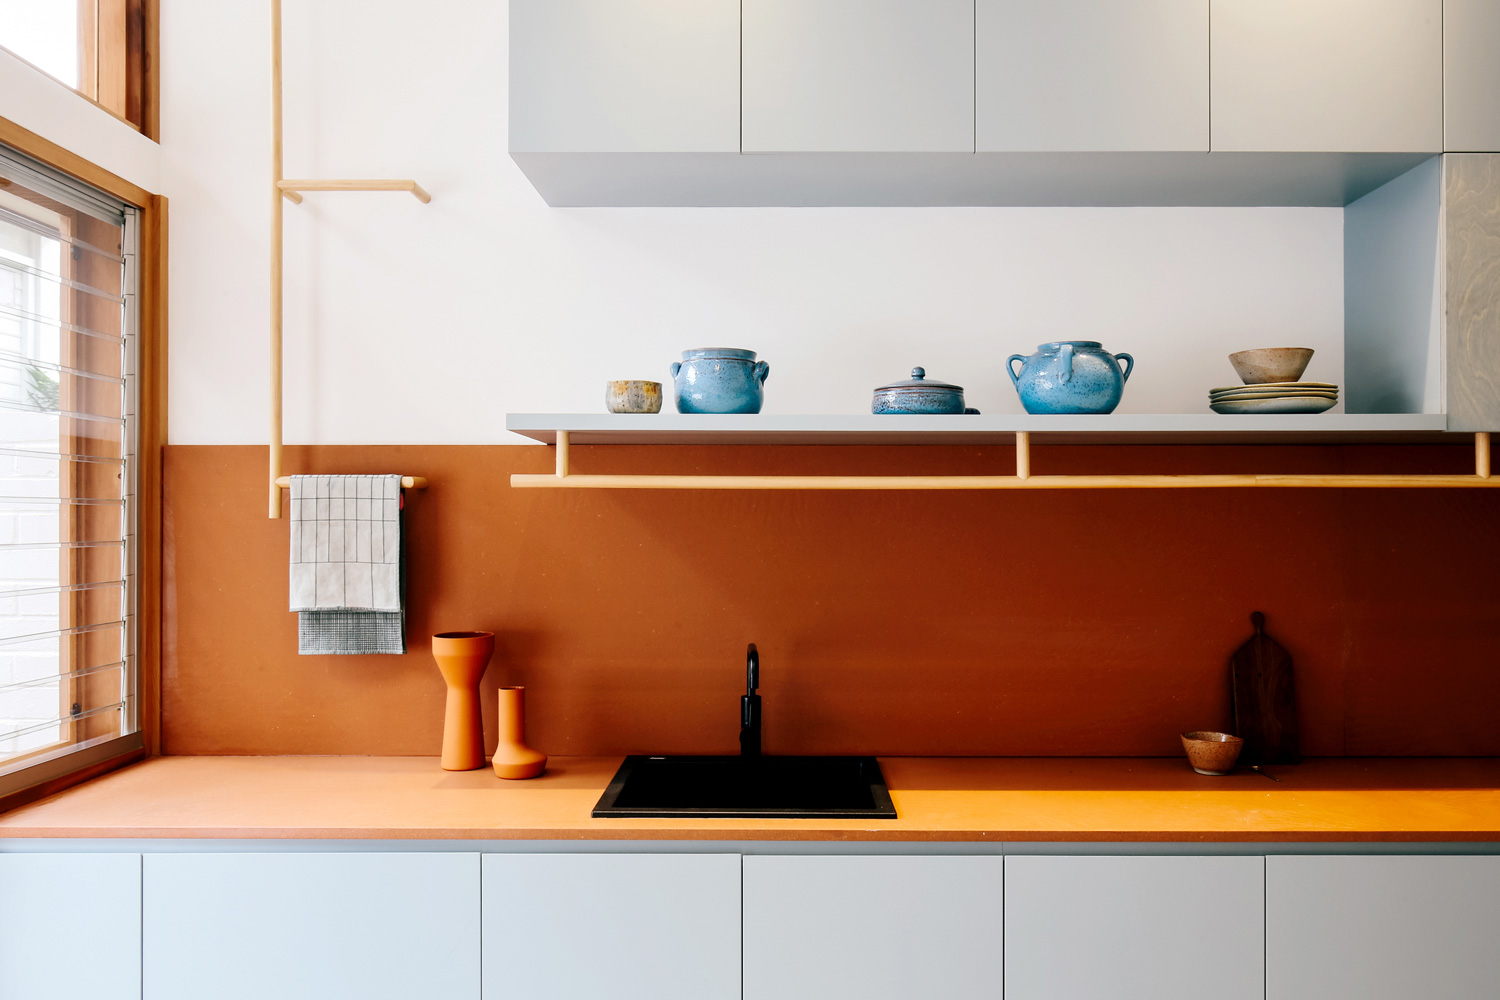 Zetland Terrace by Amber Road. Photo by Elise Hassey | Yellowtrace